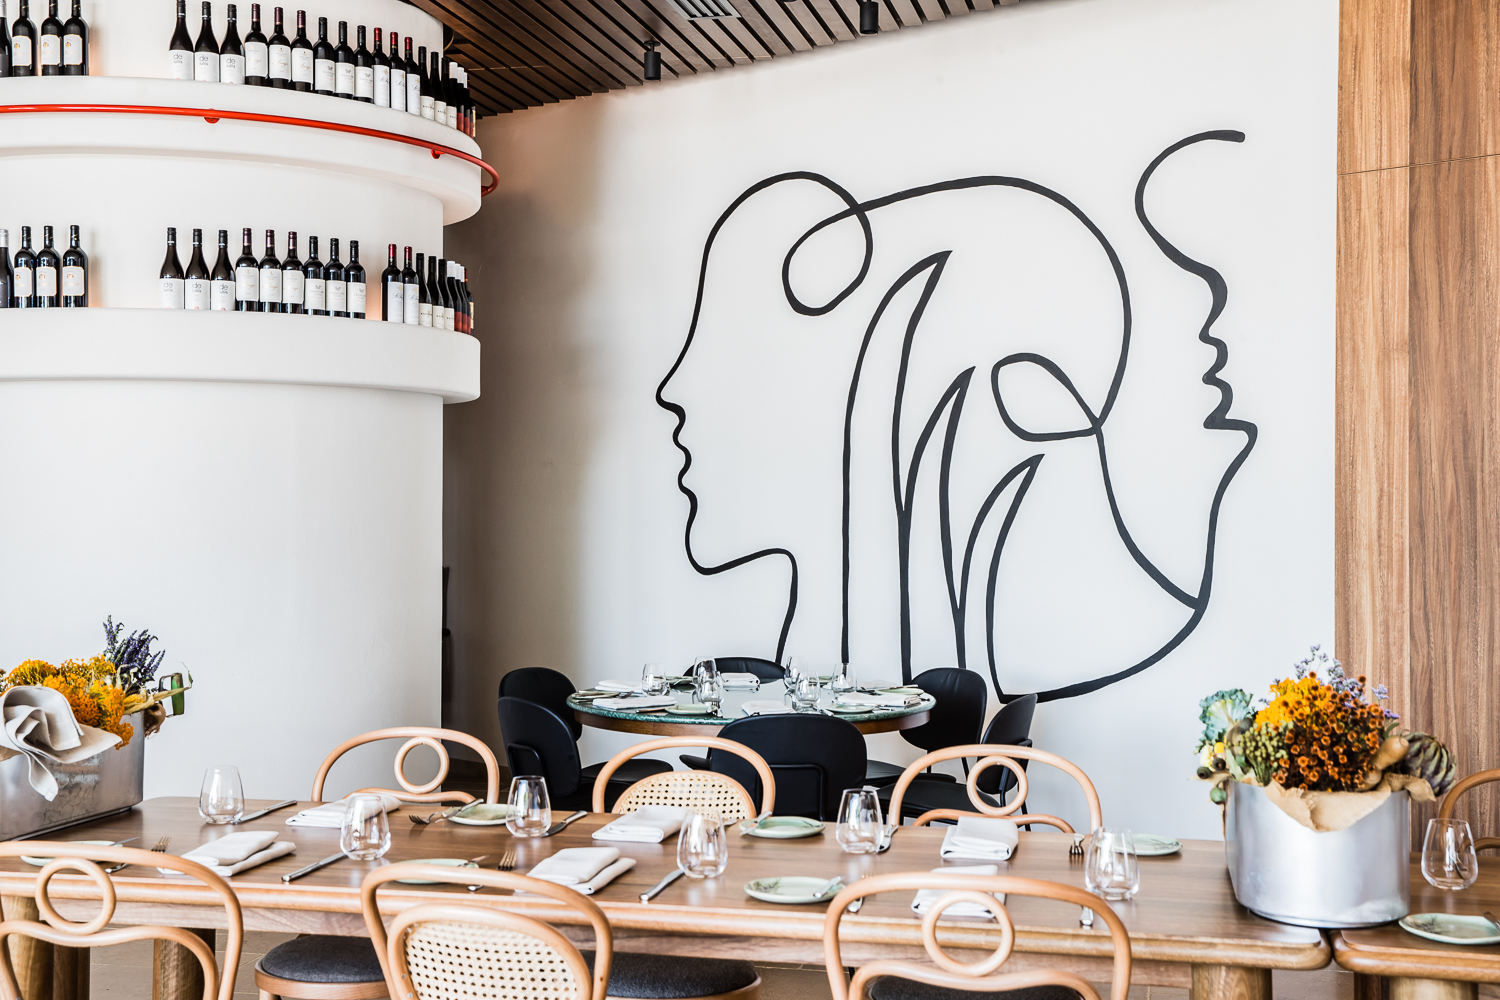 Graphic elements of the Ete restaurant